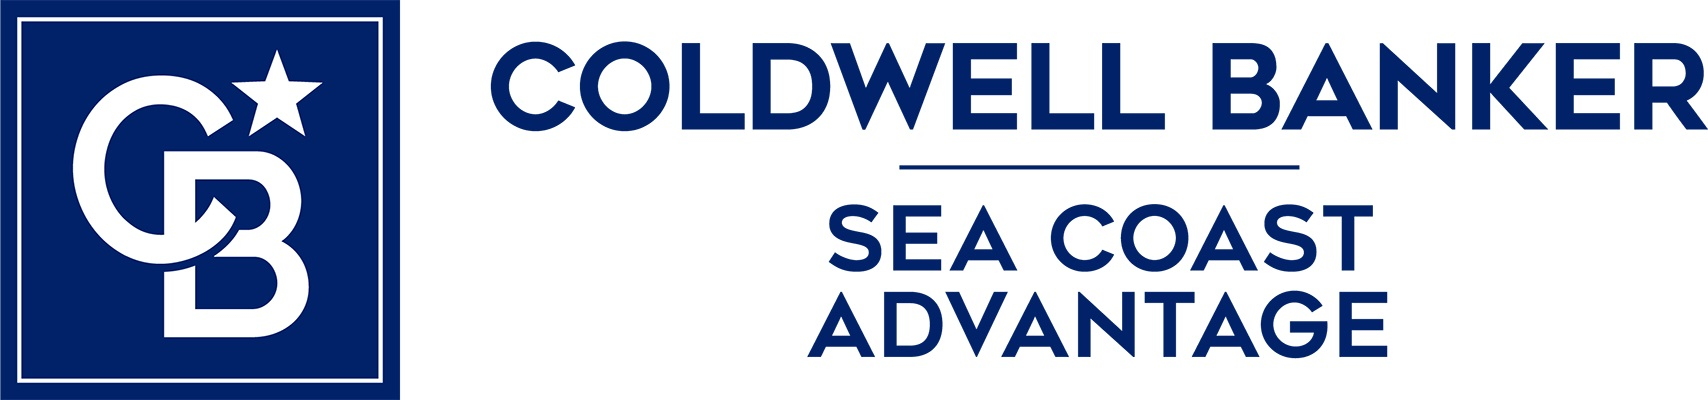 Rokoski, Blake & Associates - Coldwell Banker Sea Coast Advantage Realty